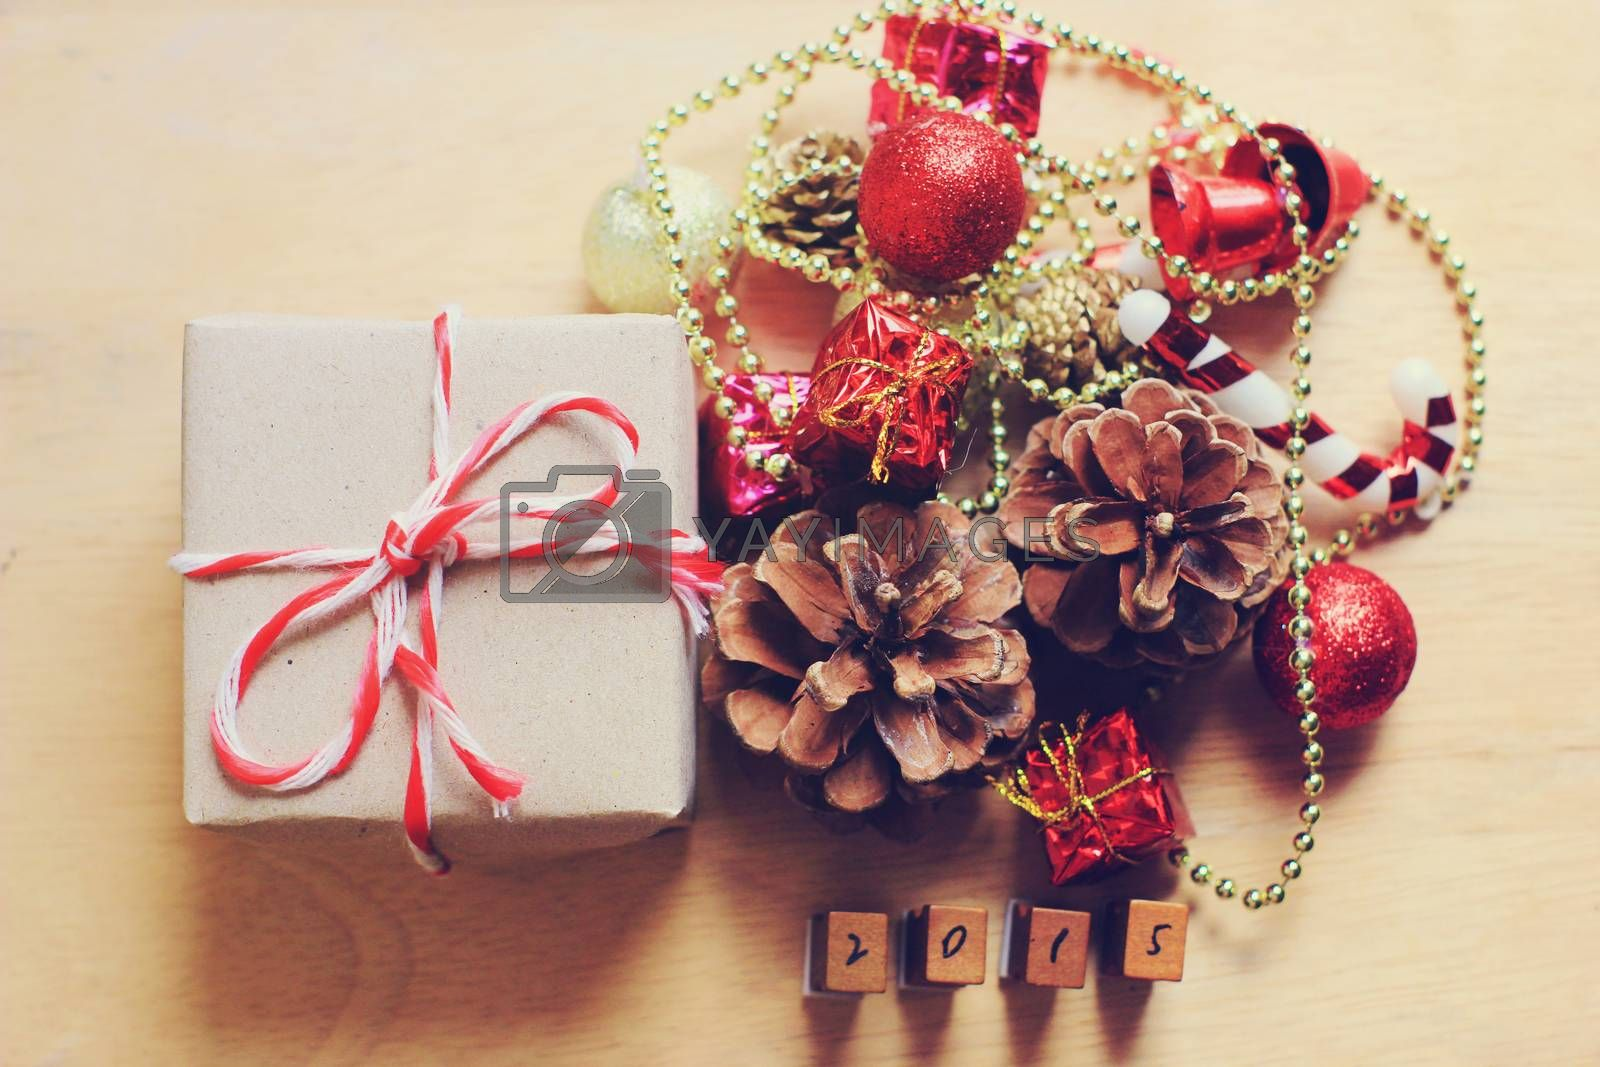 Gift box and christmas ornament with retro filter effect